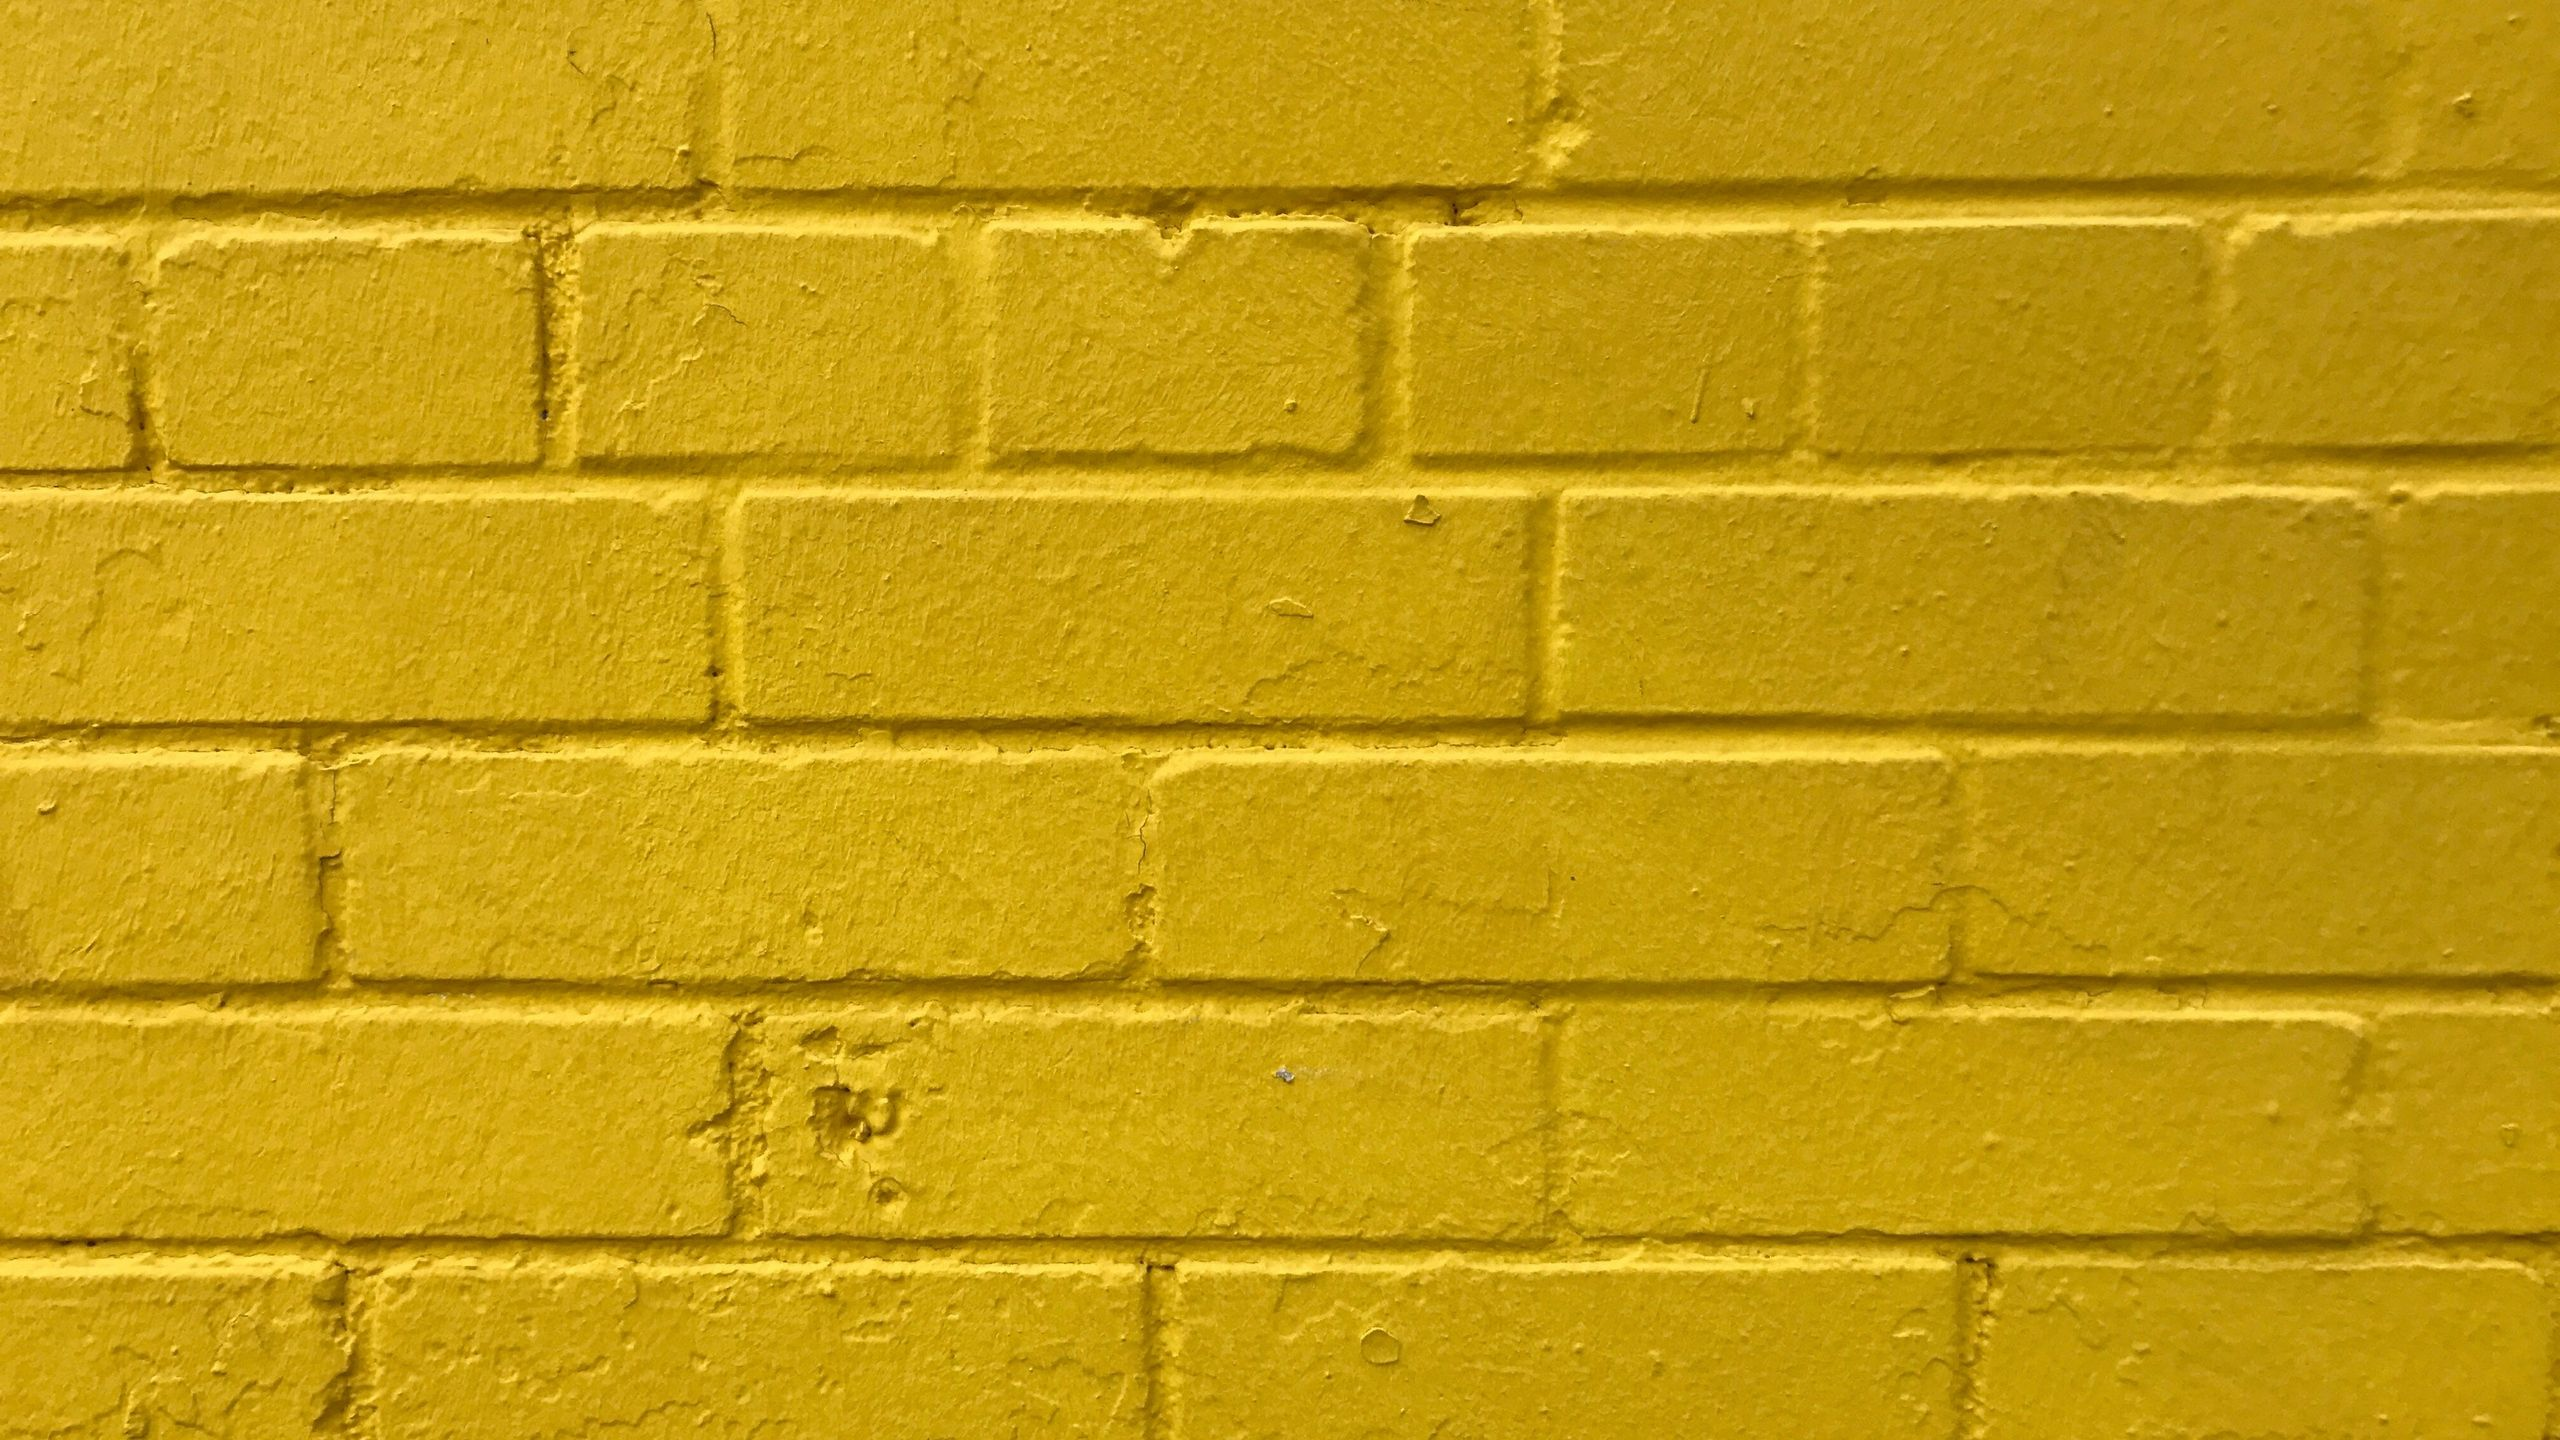 2560x1440 Yellow Wallpapers - Wallpaper Cave